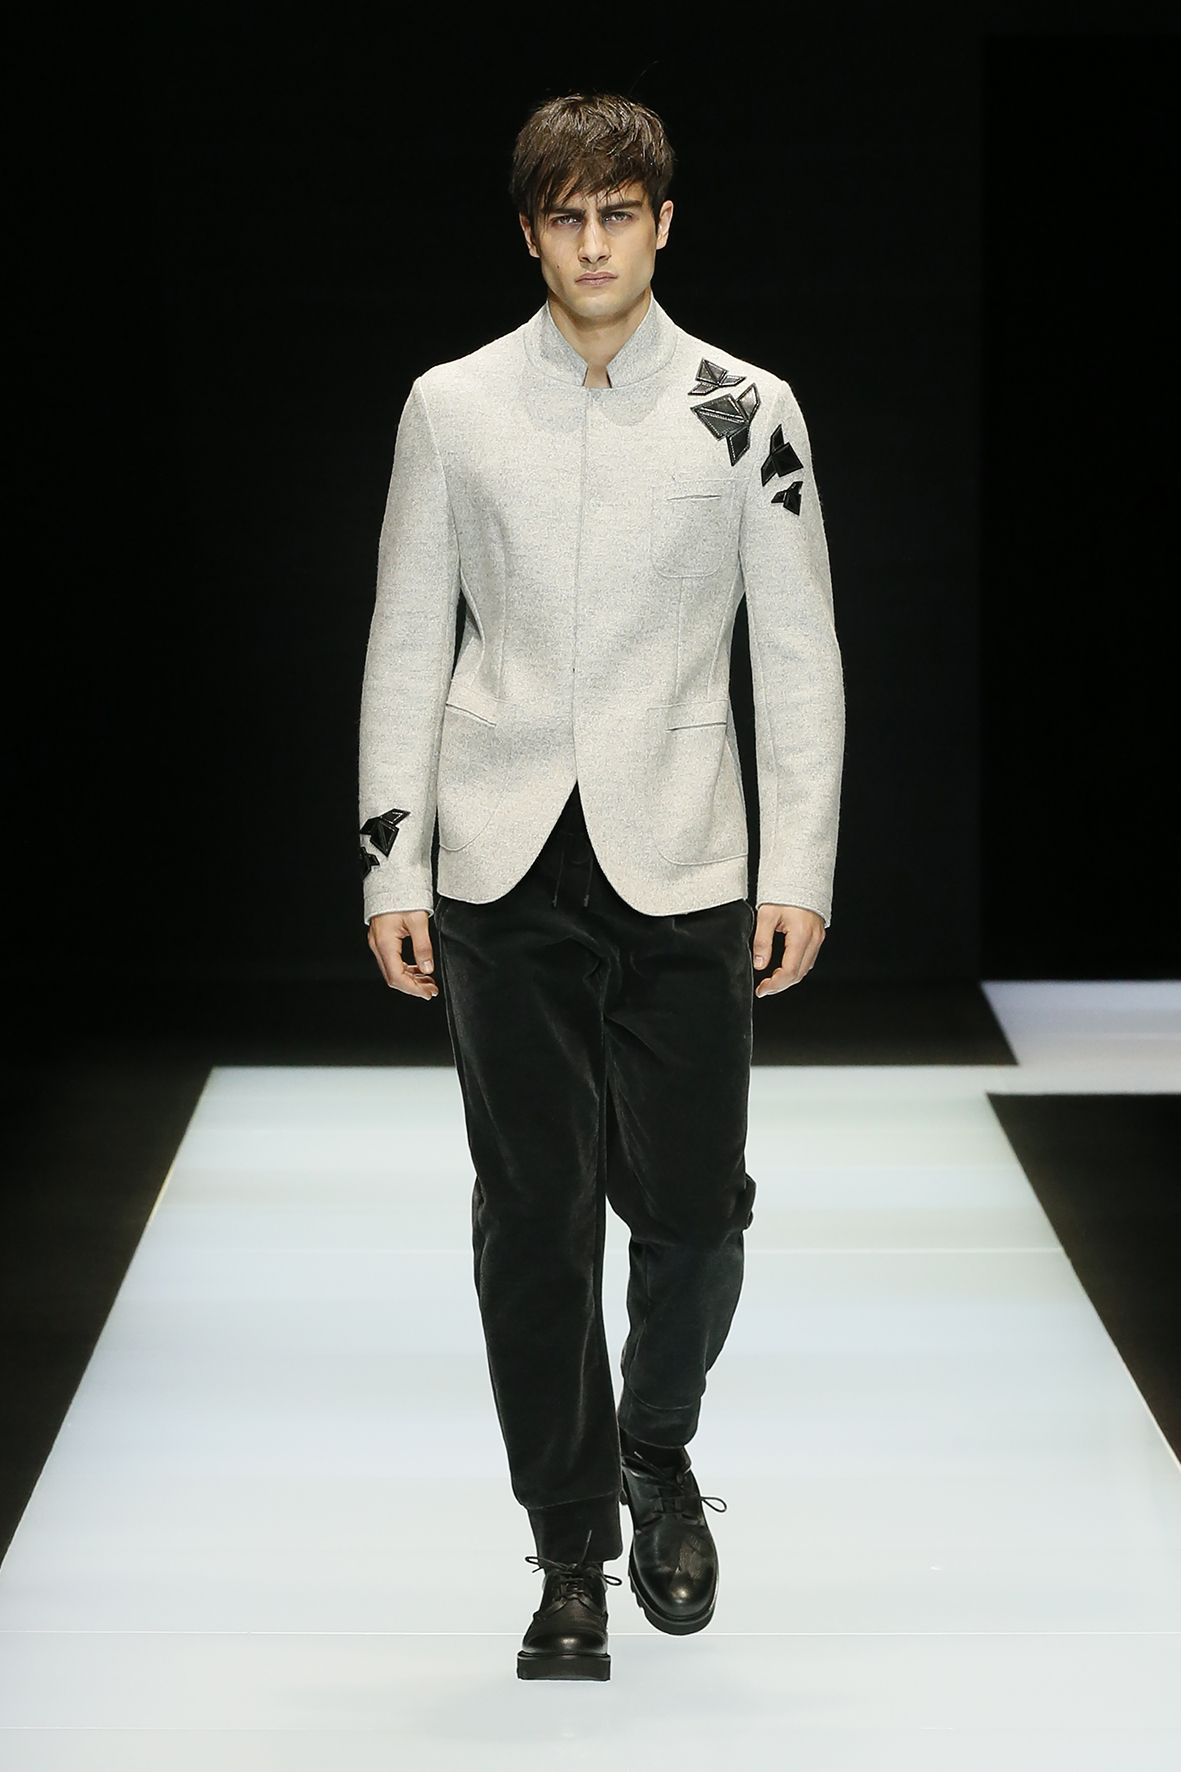 Look from the Emporio Armani Men's Fall Winter 2016 / 2017 ...